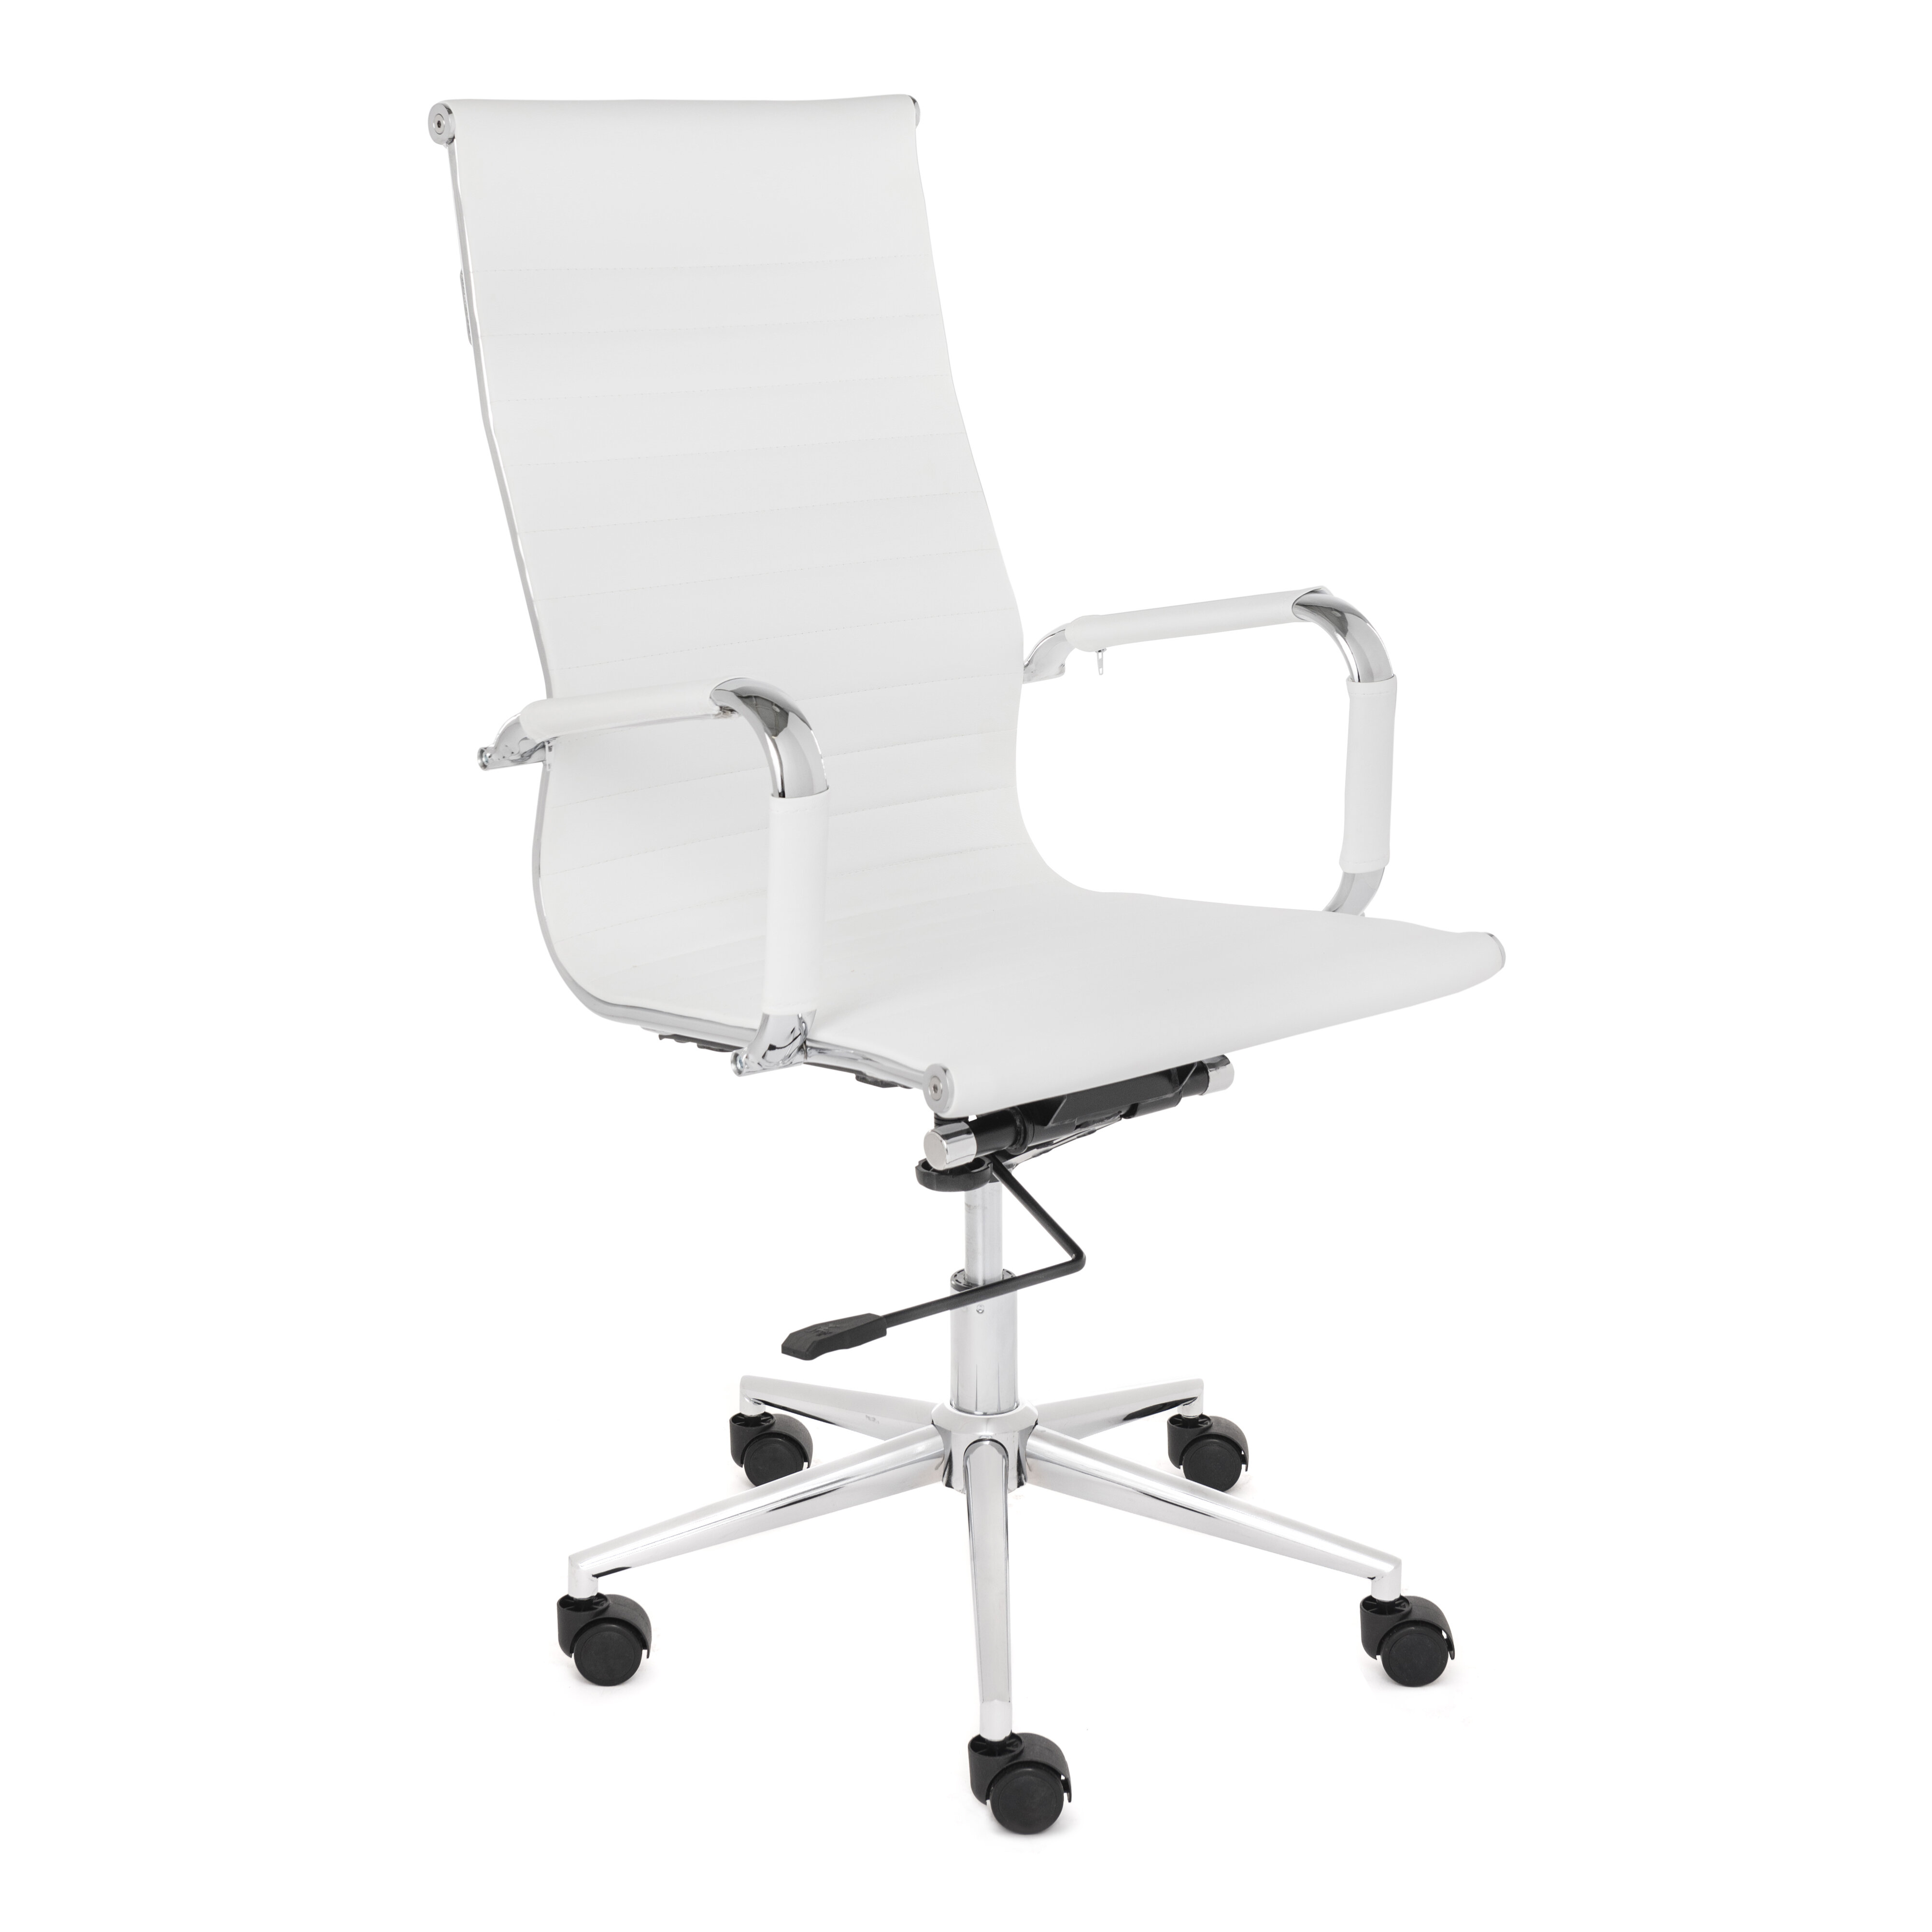 Lone Star Chairs High Back Desk Chair U0026 Reviews | Wayfair